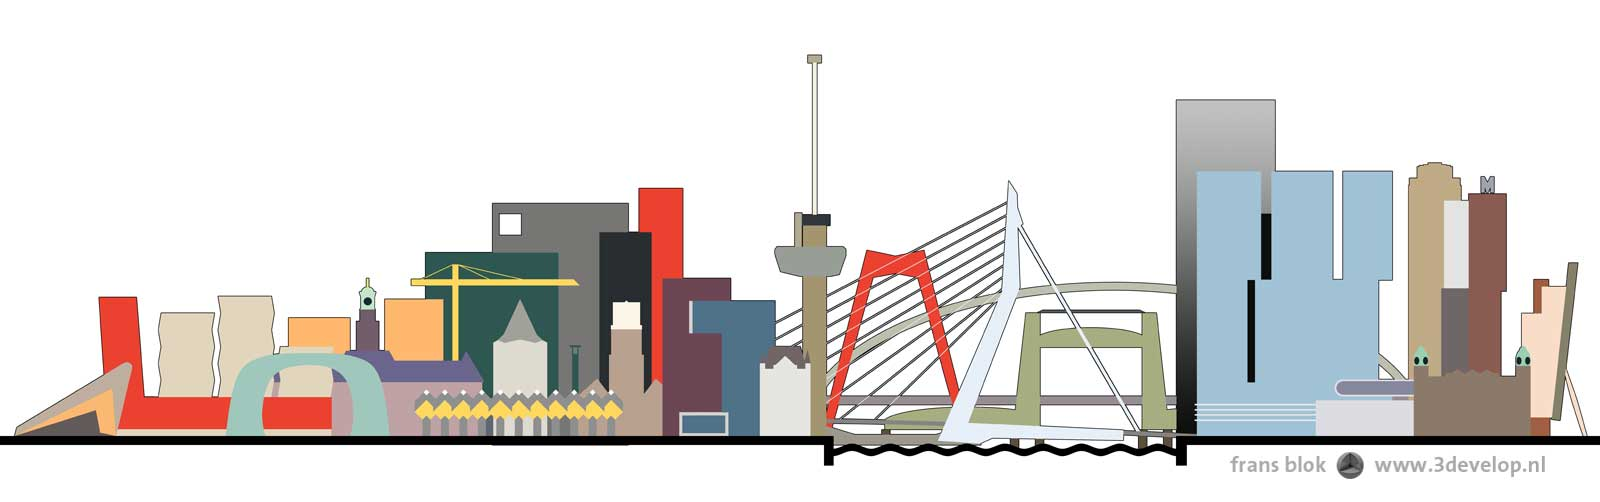 Graphical representation of the colorful skyline of Rotterdam, with four bridges and landmarks like the Central Station, Market Hall, Euromast and De Rotterdam